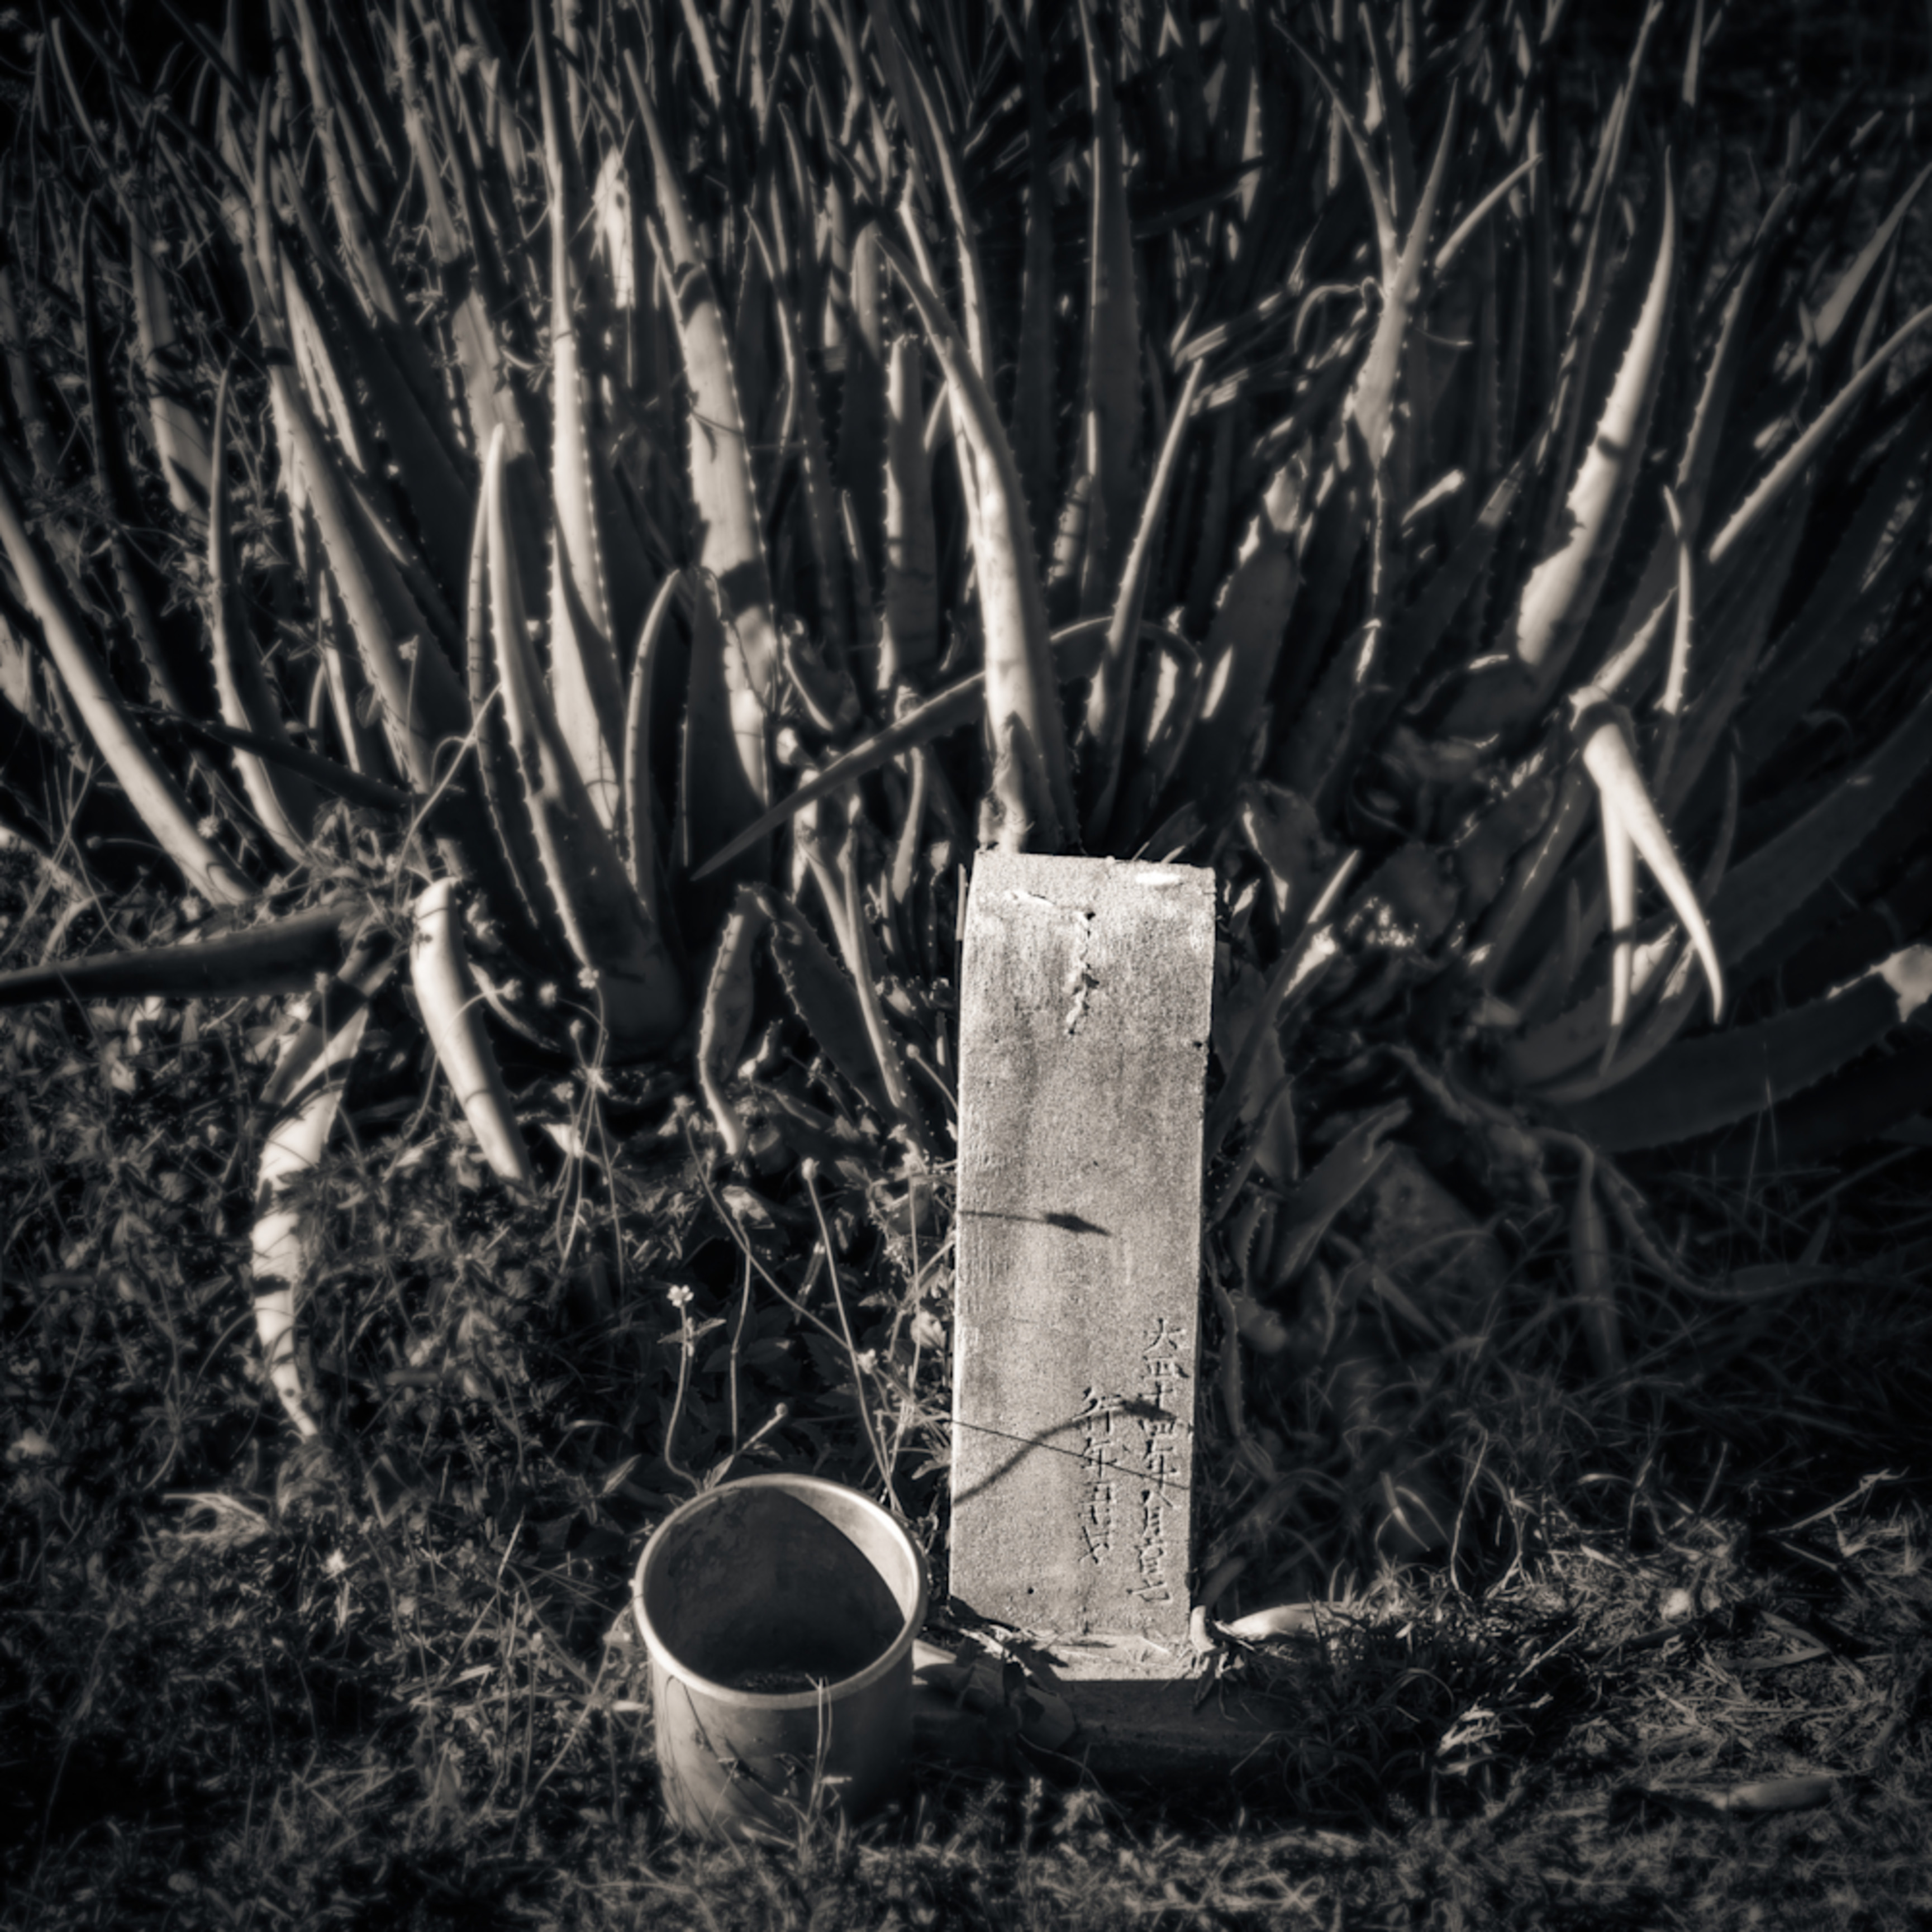 Grave marker and cactus maui 2018 mr1lxh